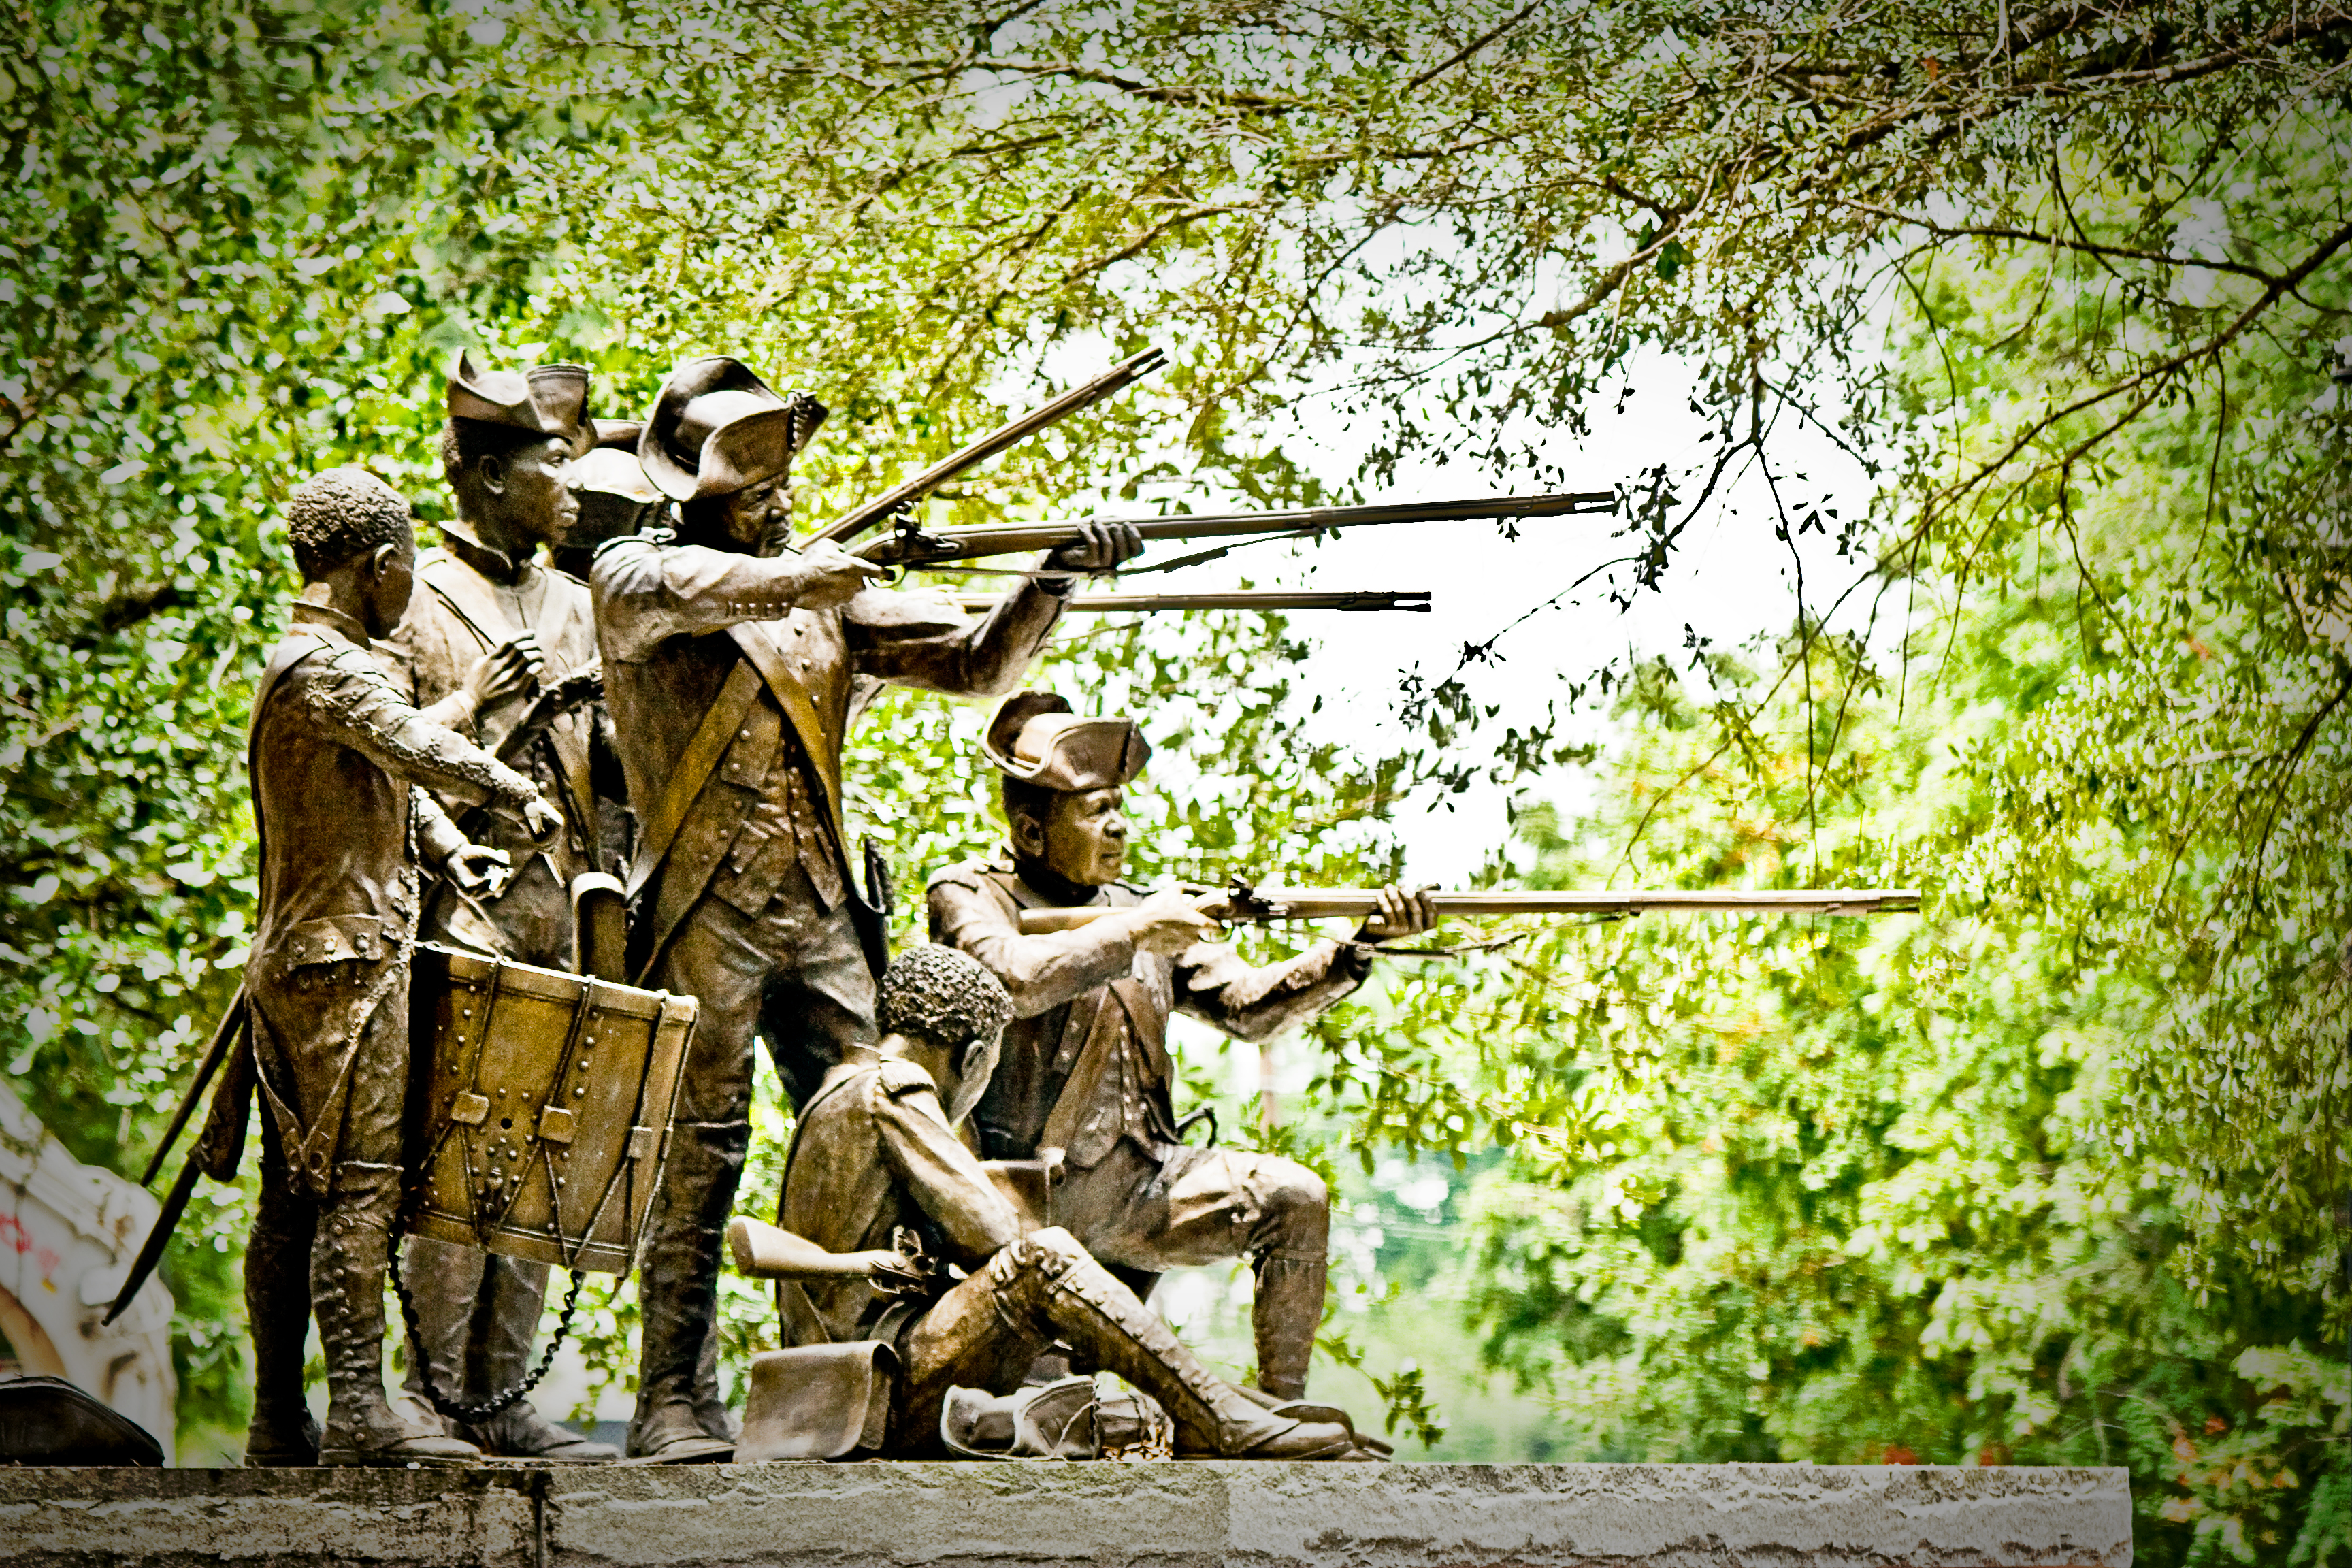 haiti revolution The haitian revolution, which took place between 1791-1804, is significant because haiti is the only country where slave freedom was taken by force, and marks the only successful slave revolt in modern times a ragtag force of slaves managed to unify haiti, defeat europe's most powerful army and .